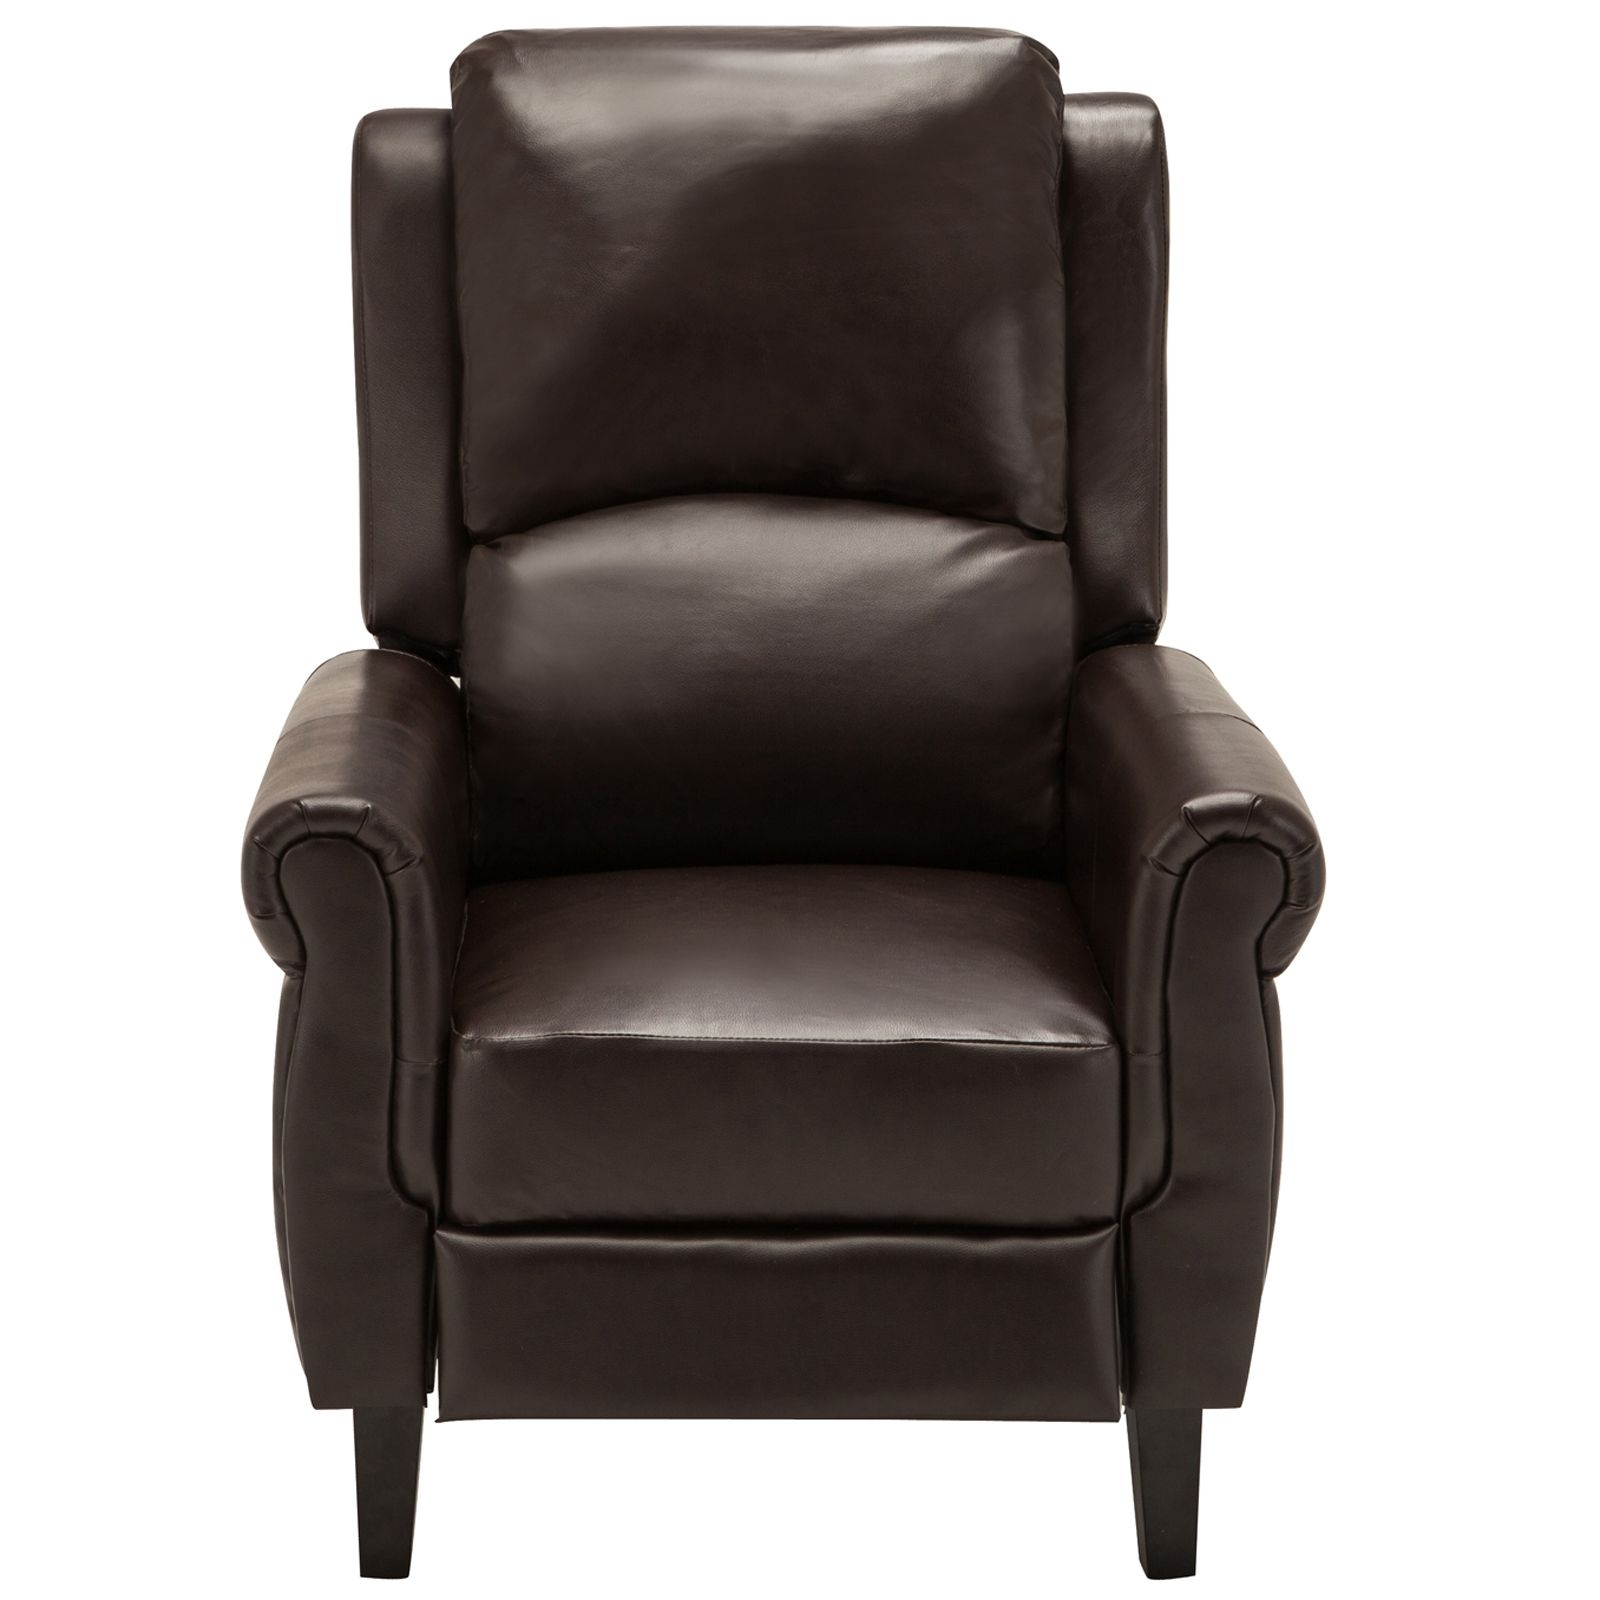 Brown Leather Recliner Armchair Accent Chair Wleg Rest Living Room Furniture  Ebay